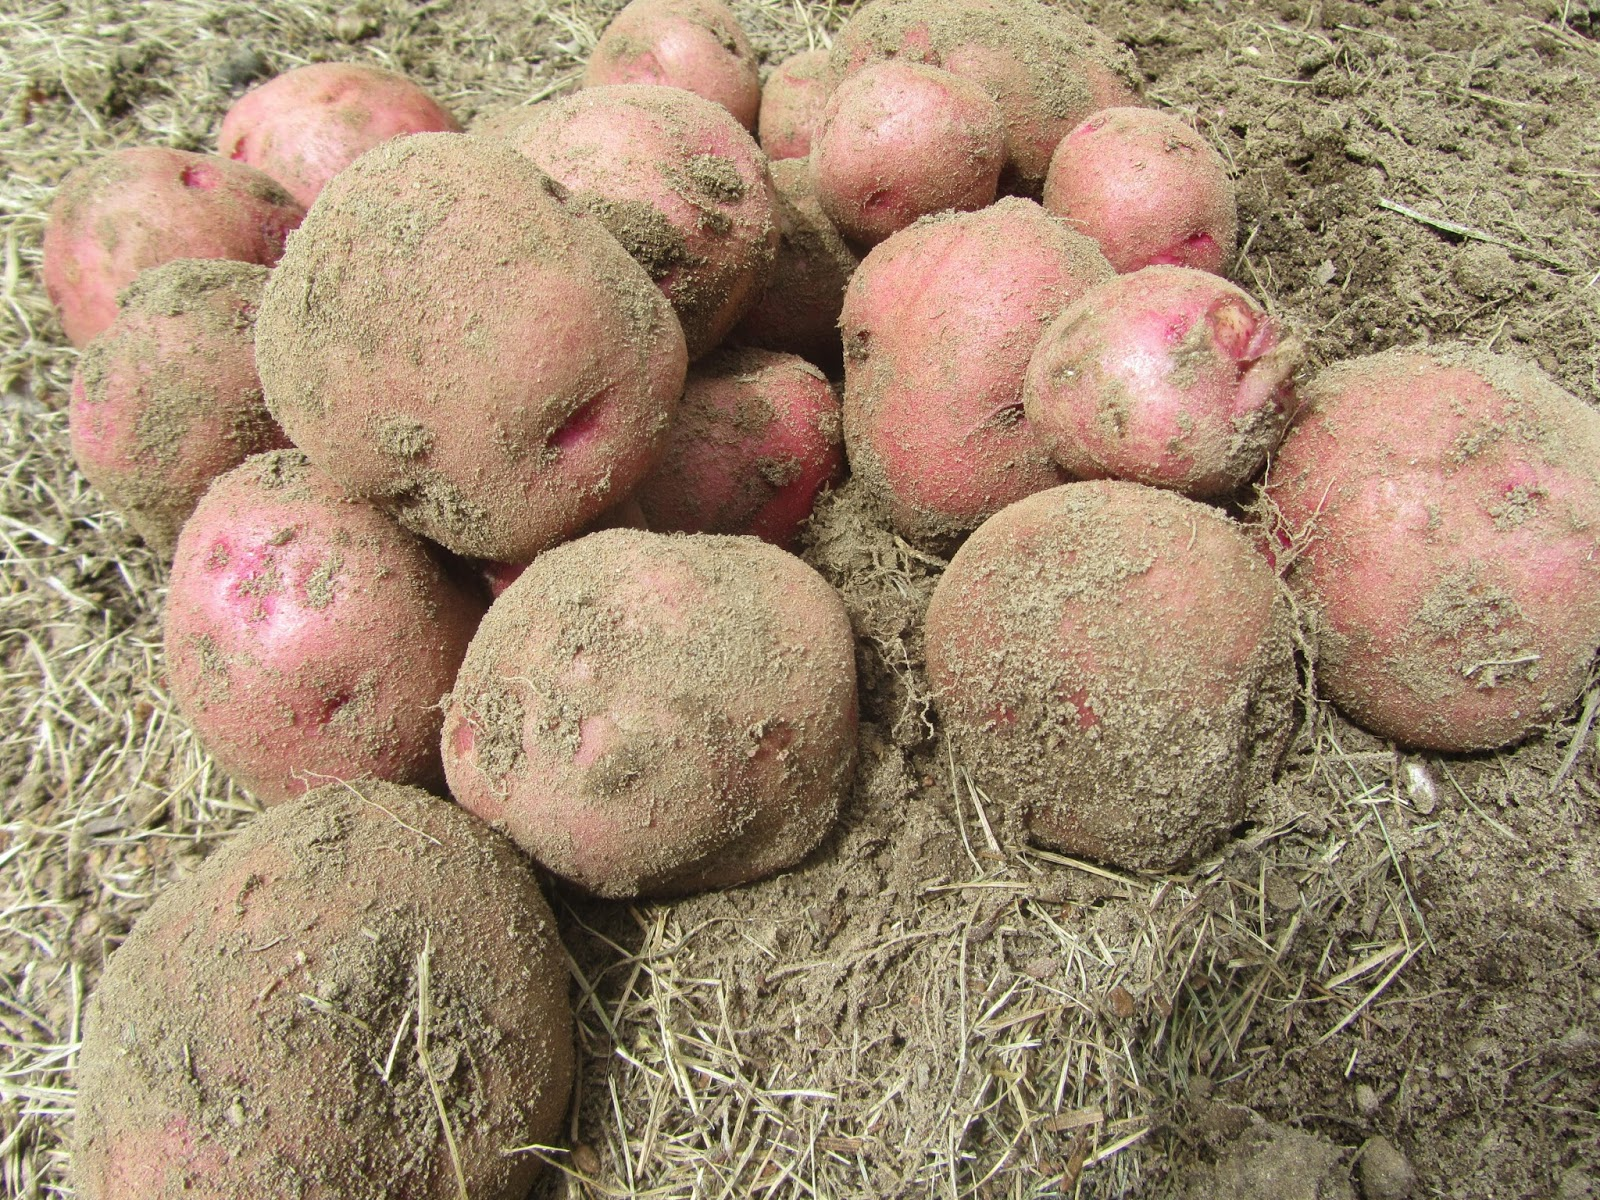 freshly harvested baby red potatoes